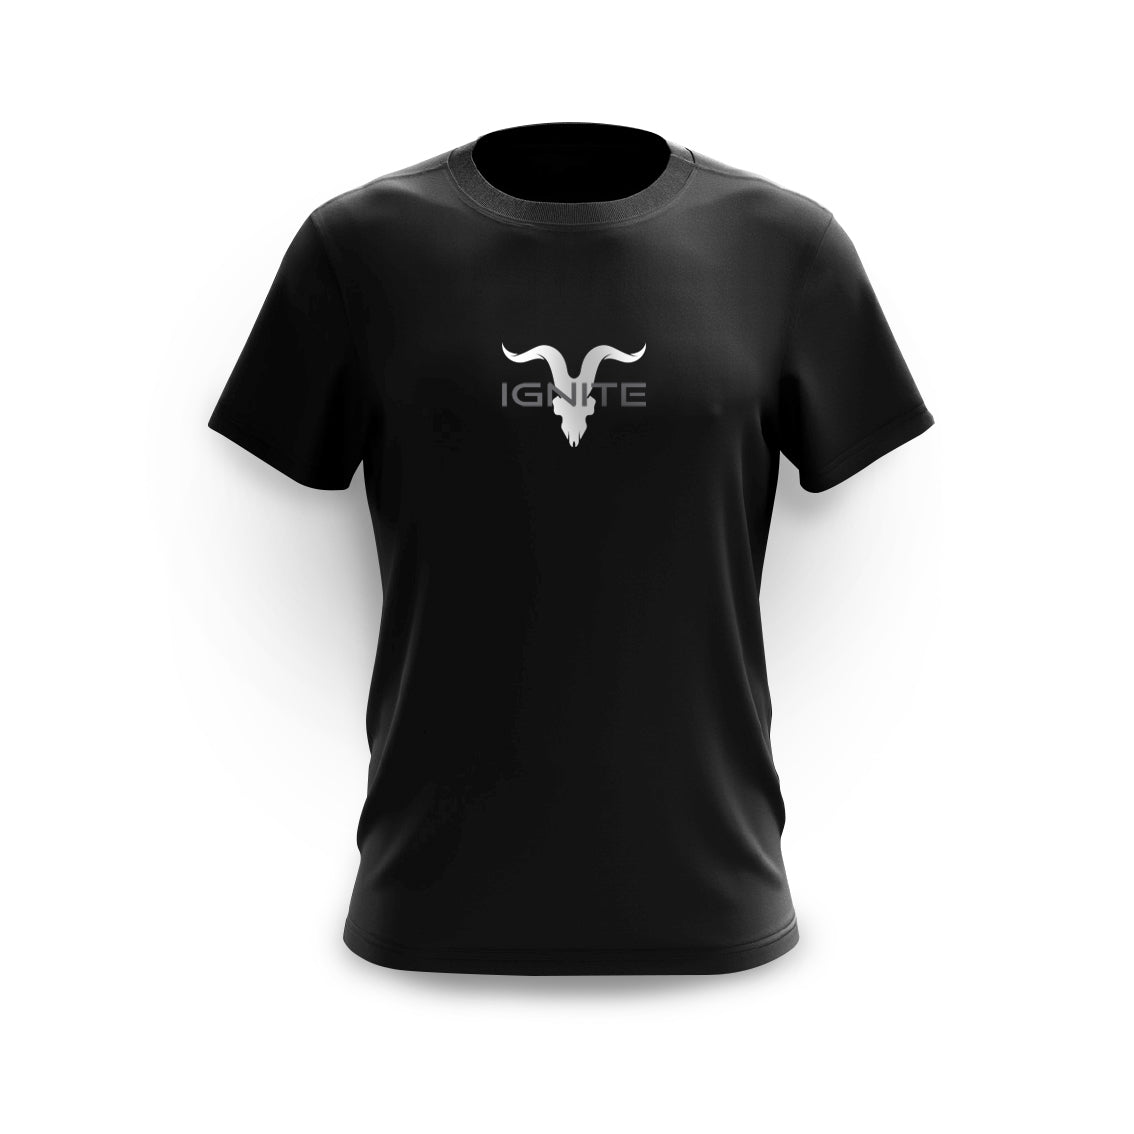 Ignite Premium Collection Men's Black Classic Logo Tee - ignite-merch